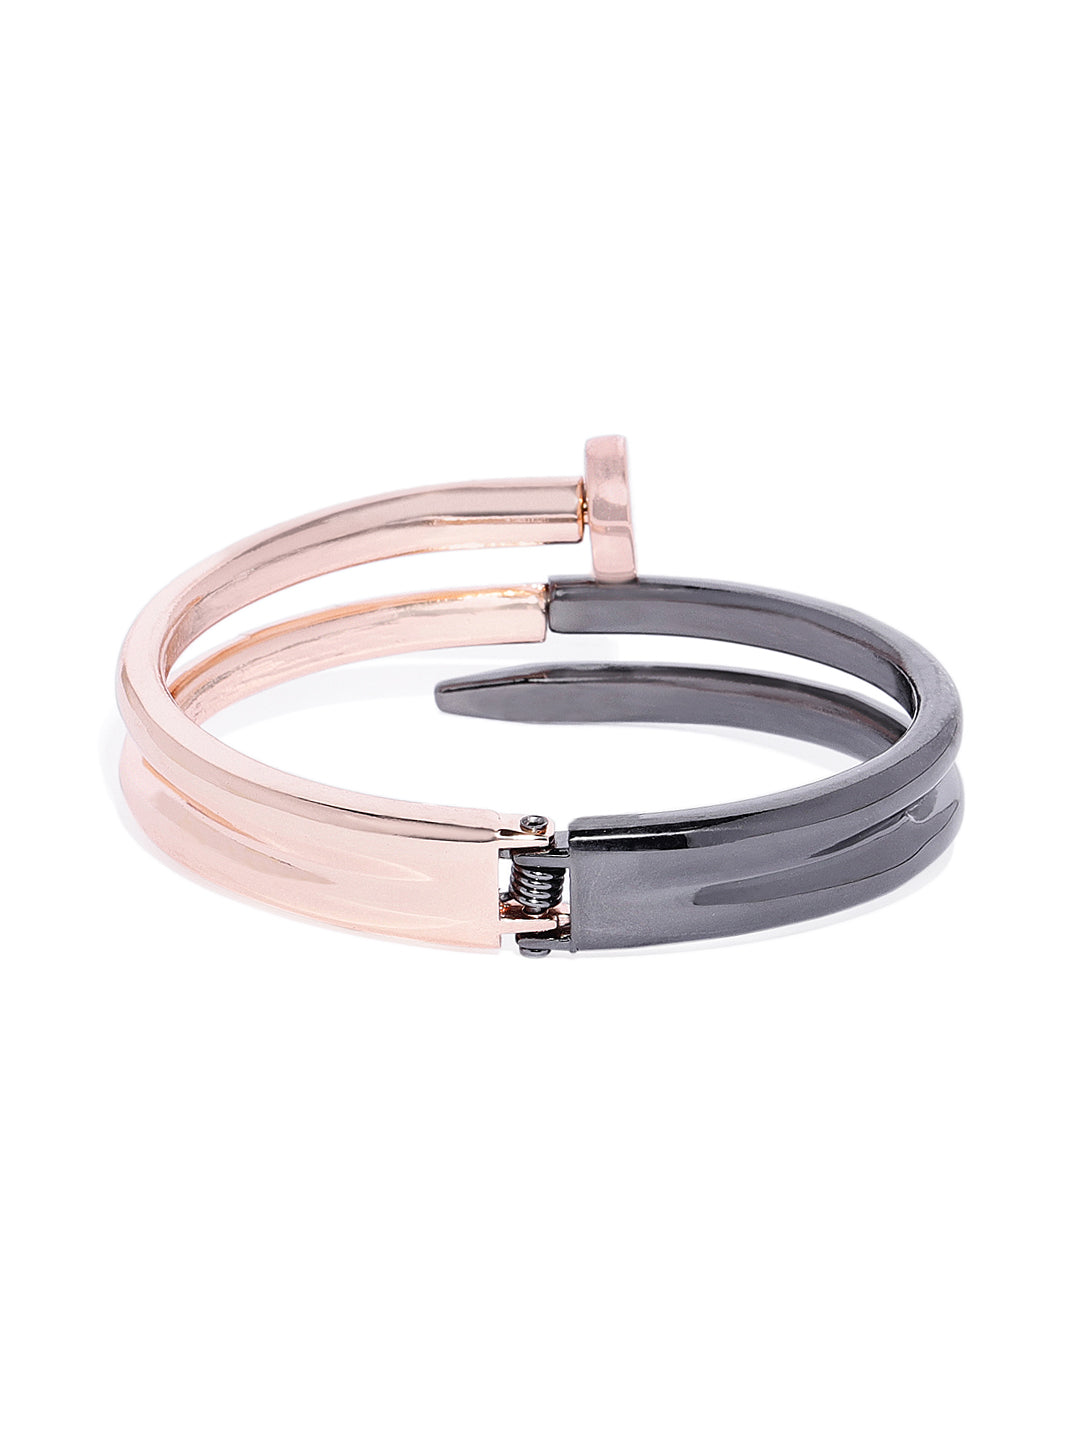 Nail Cuff in Rose Gold and Black